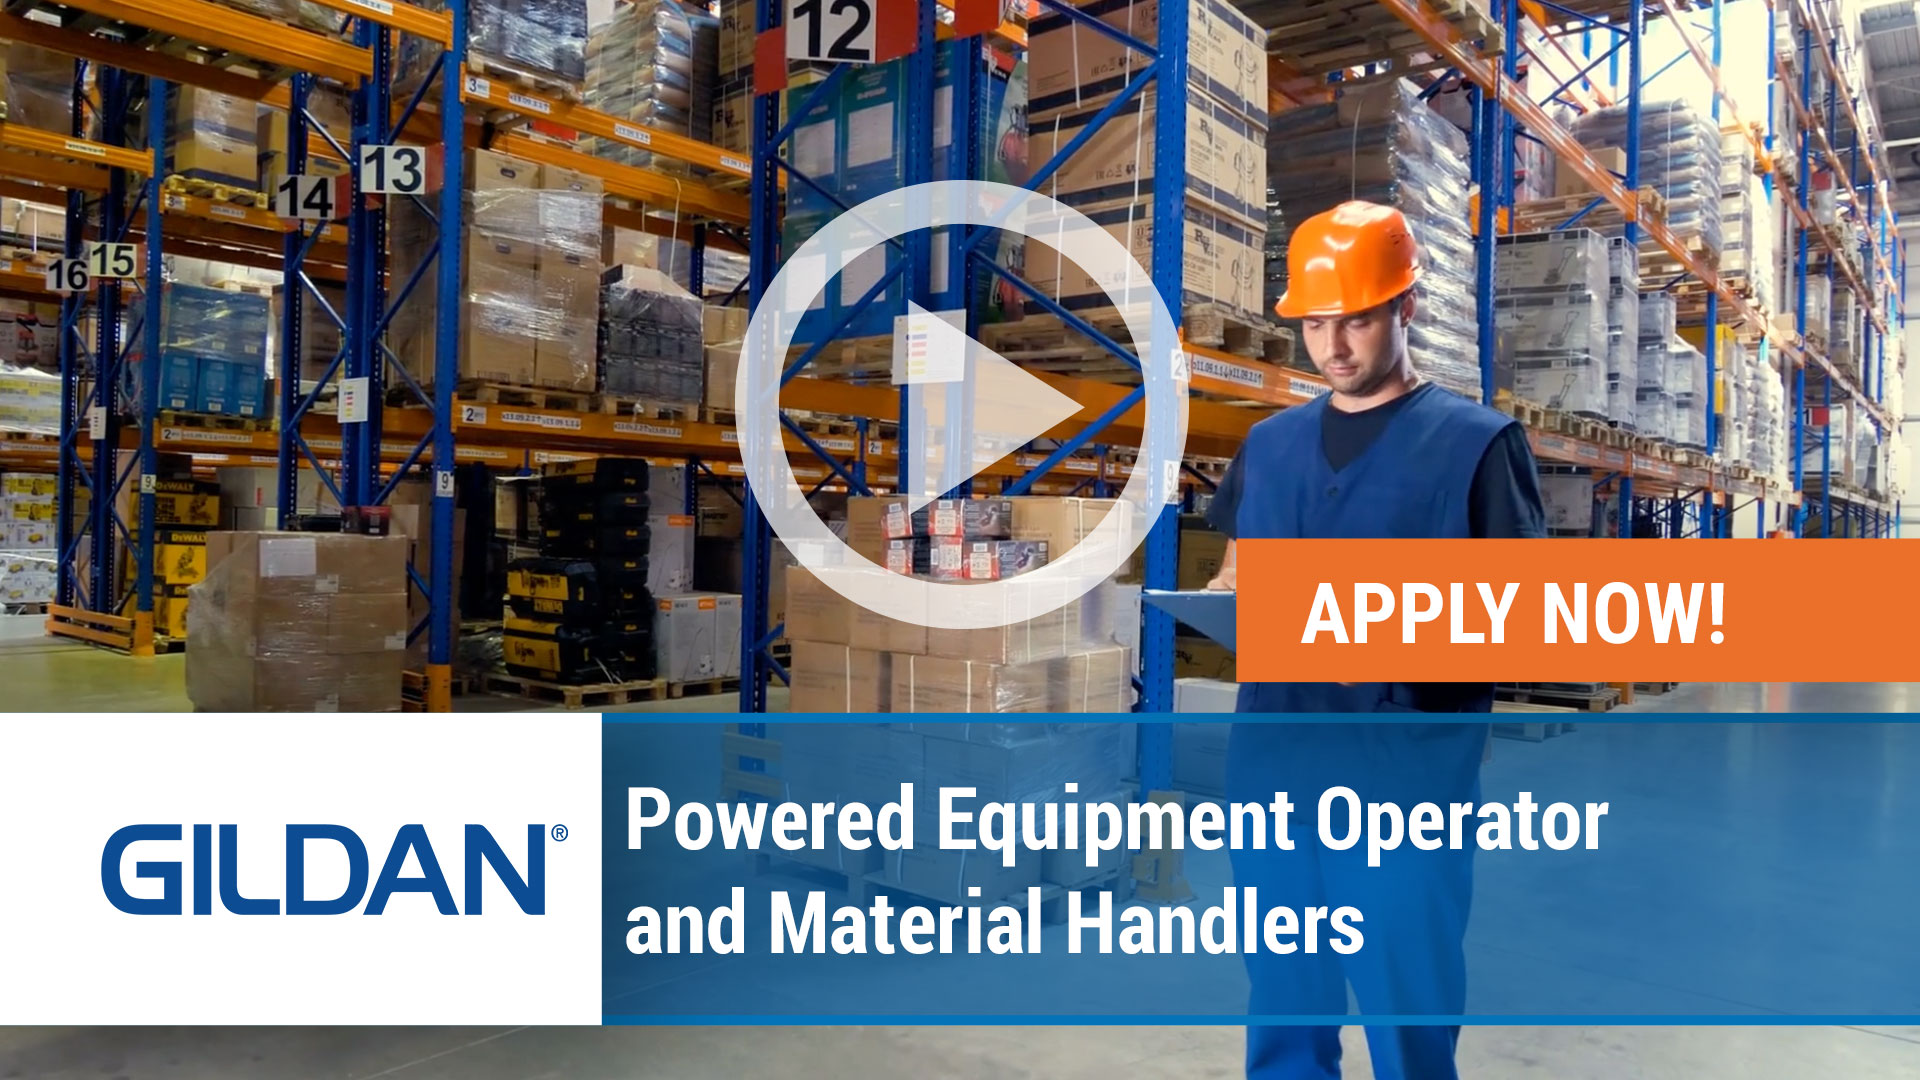 Watch our careers video for available job opening Powered Equipment Operator and Material Handlers in Charleston, South Carolina